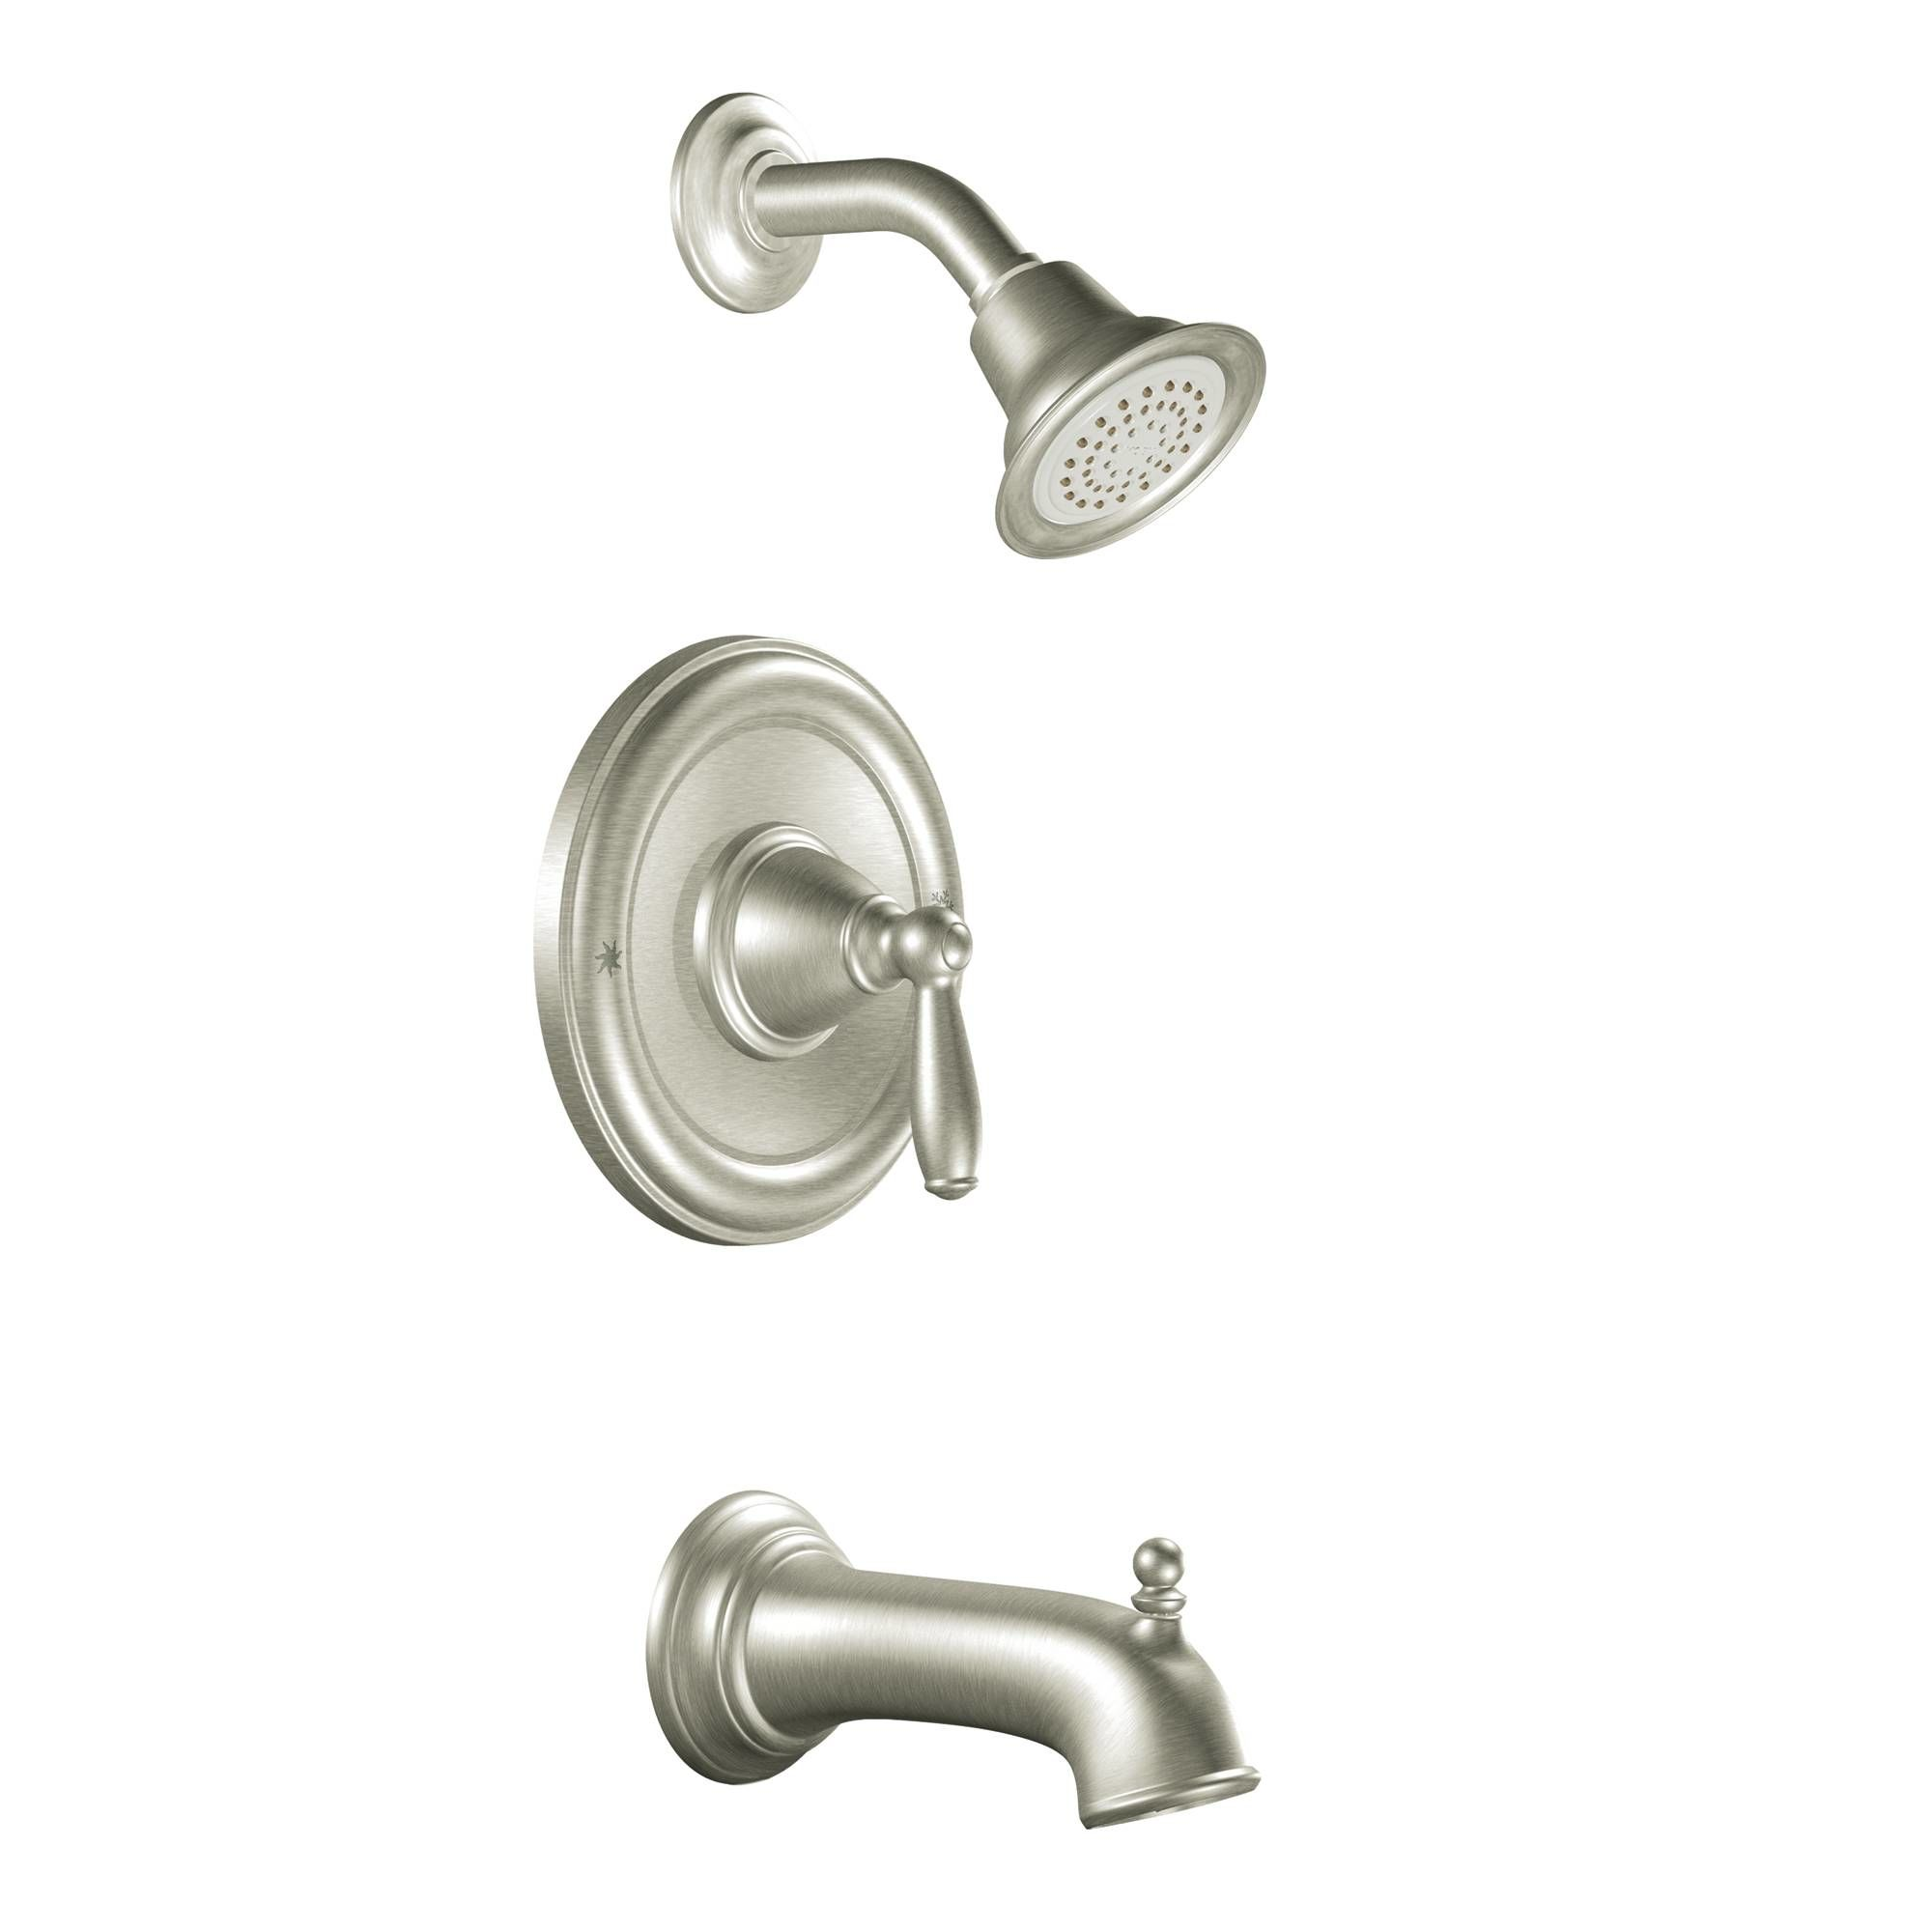 Moen T2153BN Brushed Nickel Posi-Temp Pressure Balanced Tub and ...